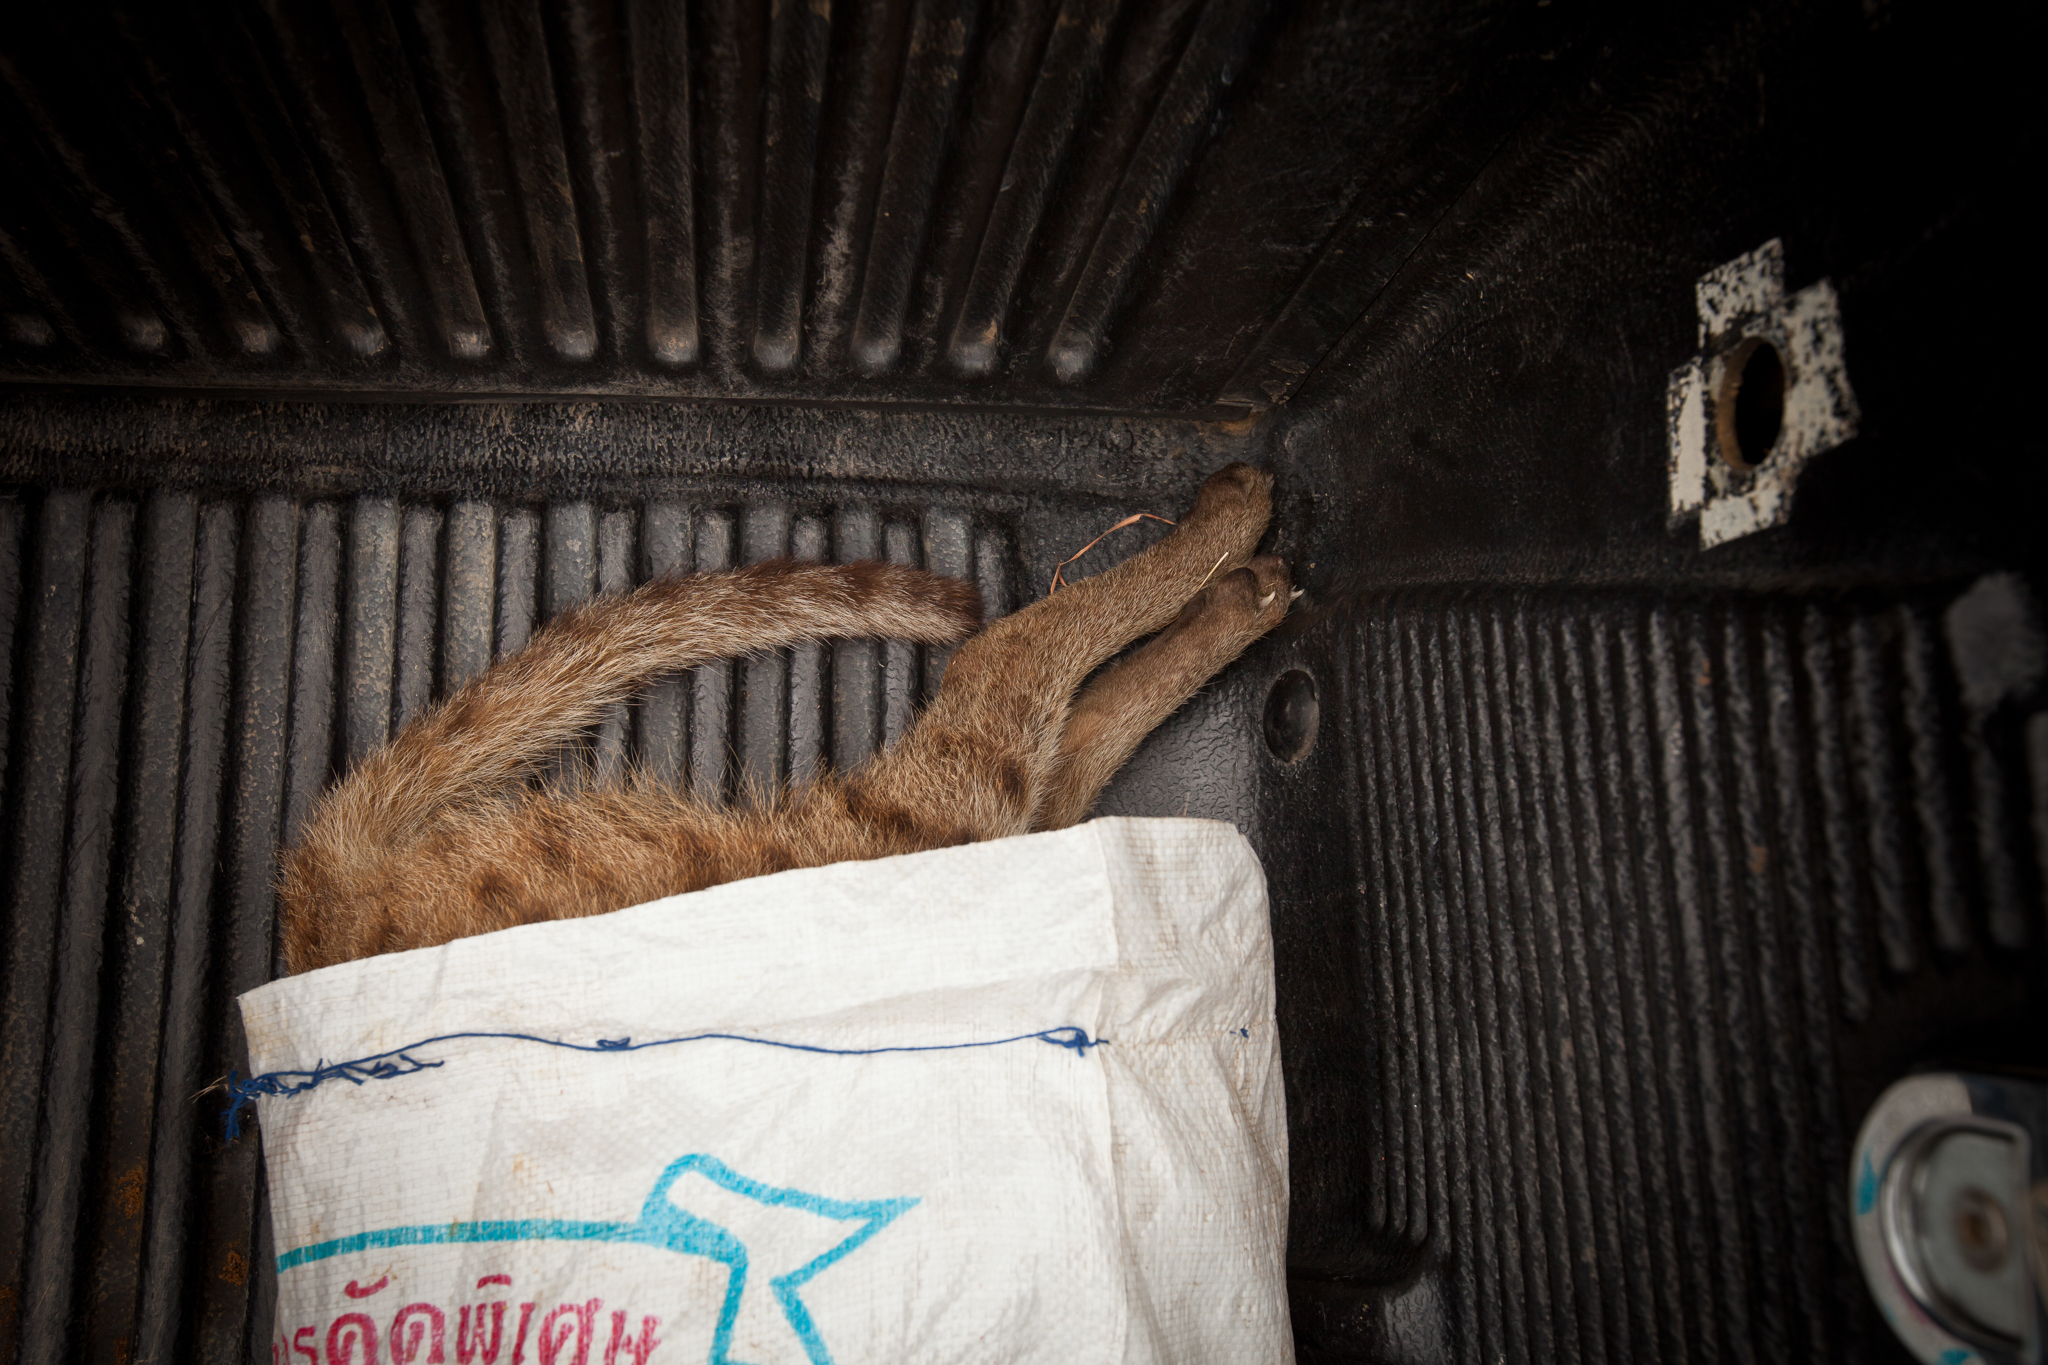 An old rice sack serves as a body bag for a dead fishing cat found by the side of the road near Khao Sam Roi Yot National Park. The cat is on its way to a necropsy to find out how it died. A subsequent examination revealed the cat had been shot.